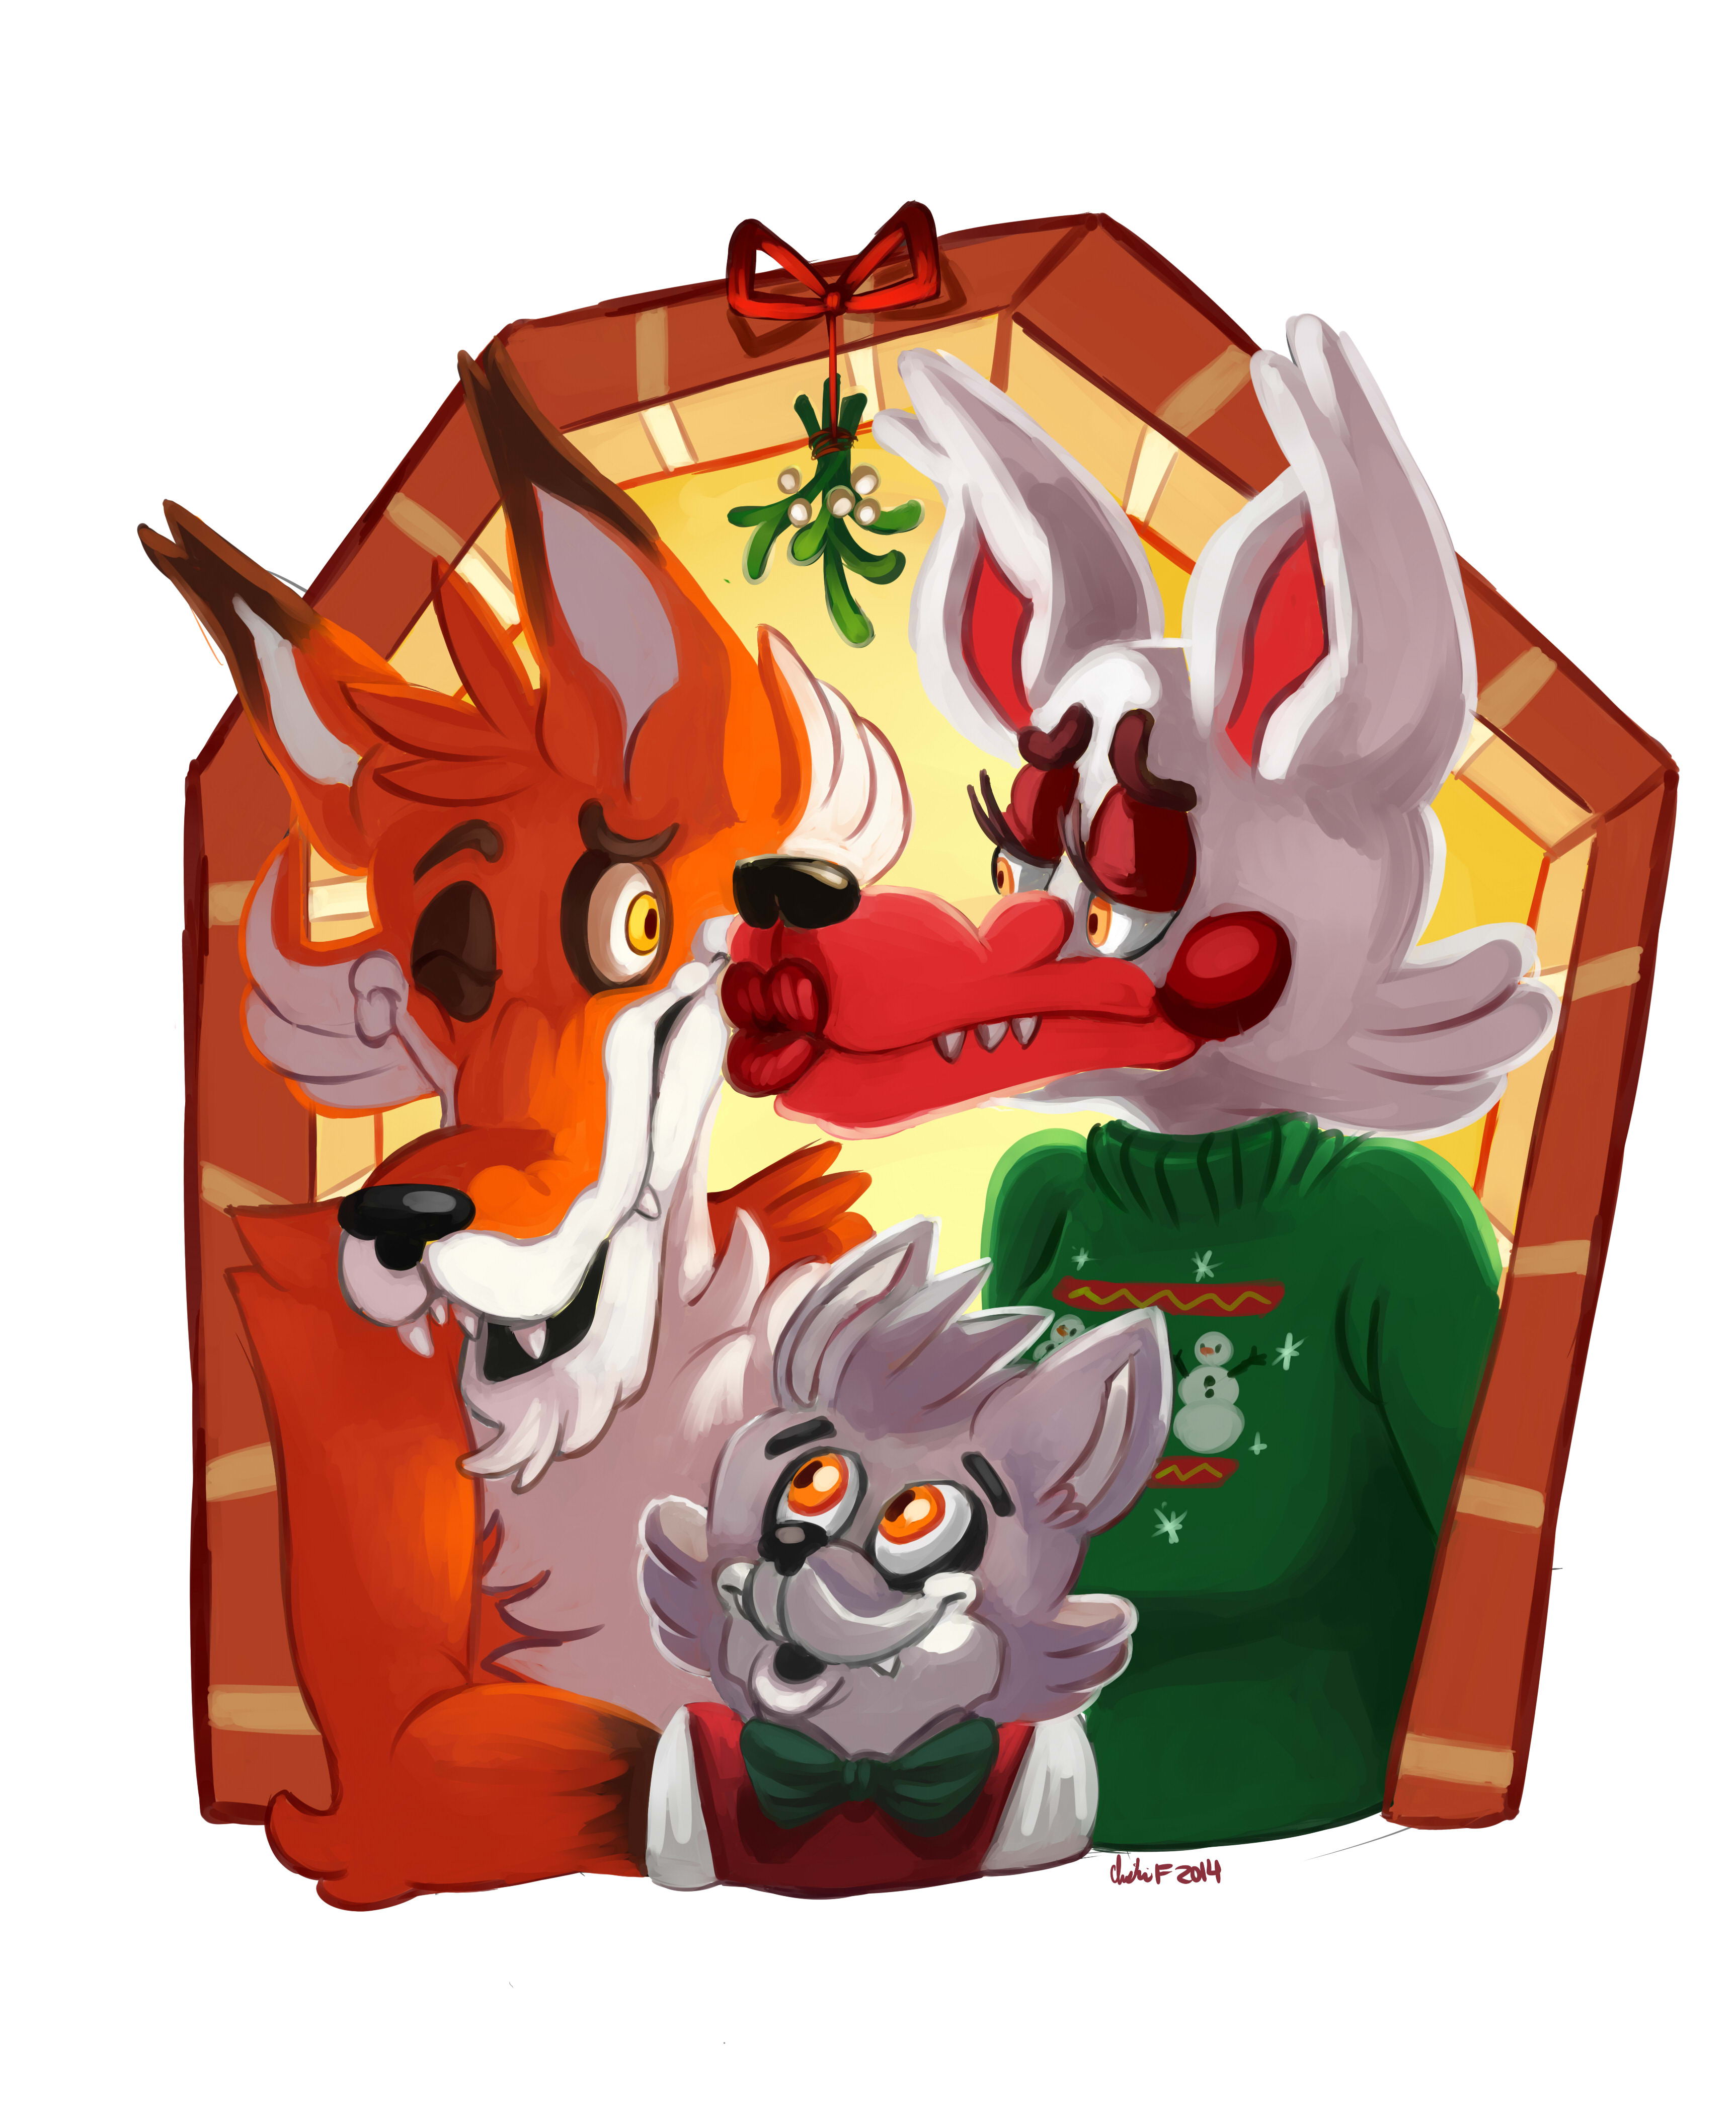 A Five Night's At Freddy's Christmas - Foxy and Mangle! — Weasyl